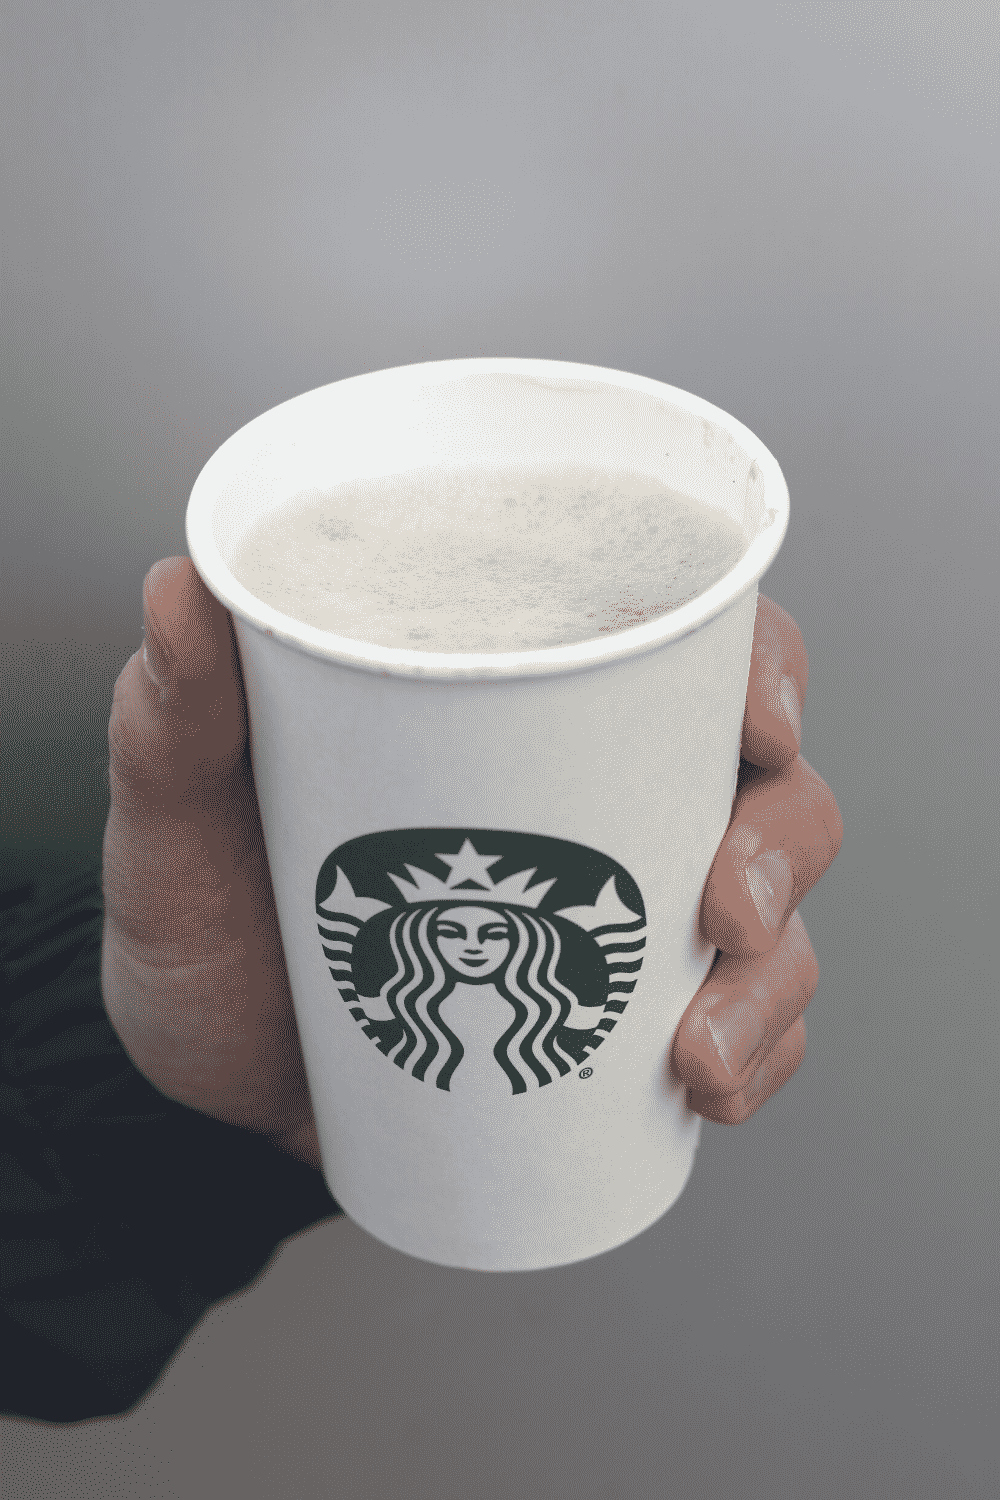 A hand holding a cup of vegan Starbucks cappuccino.